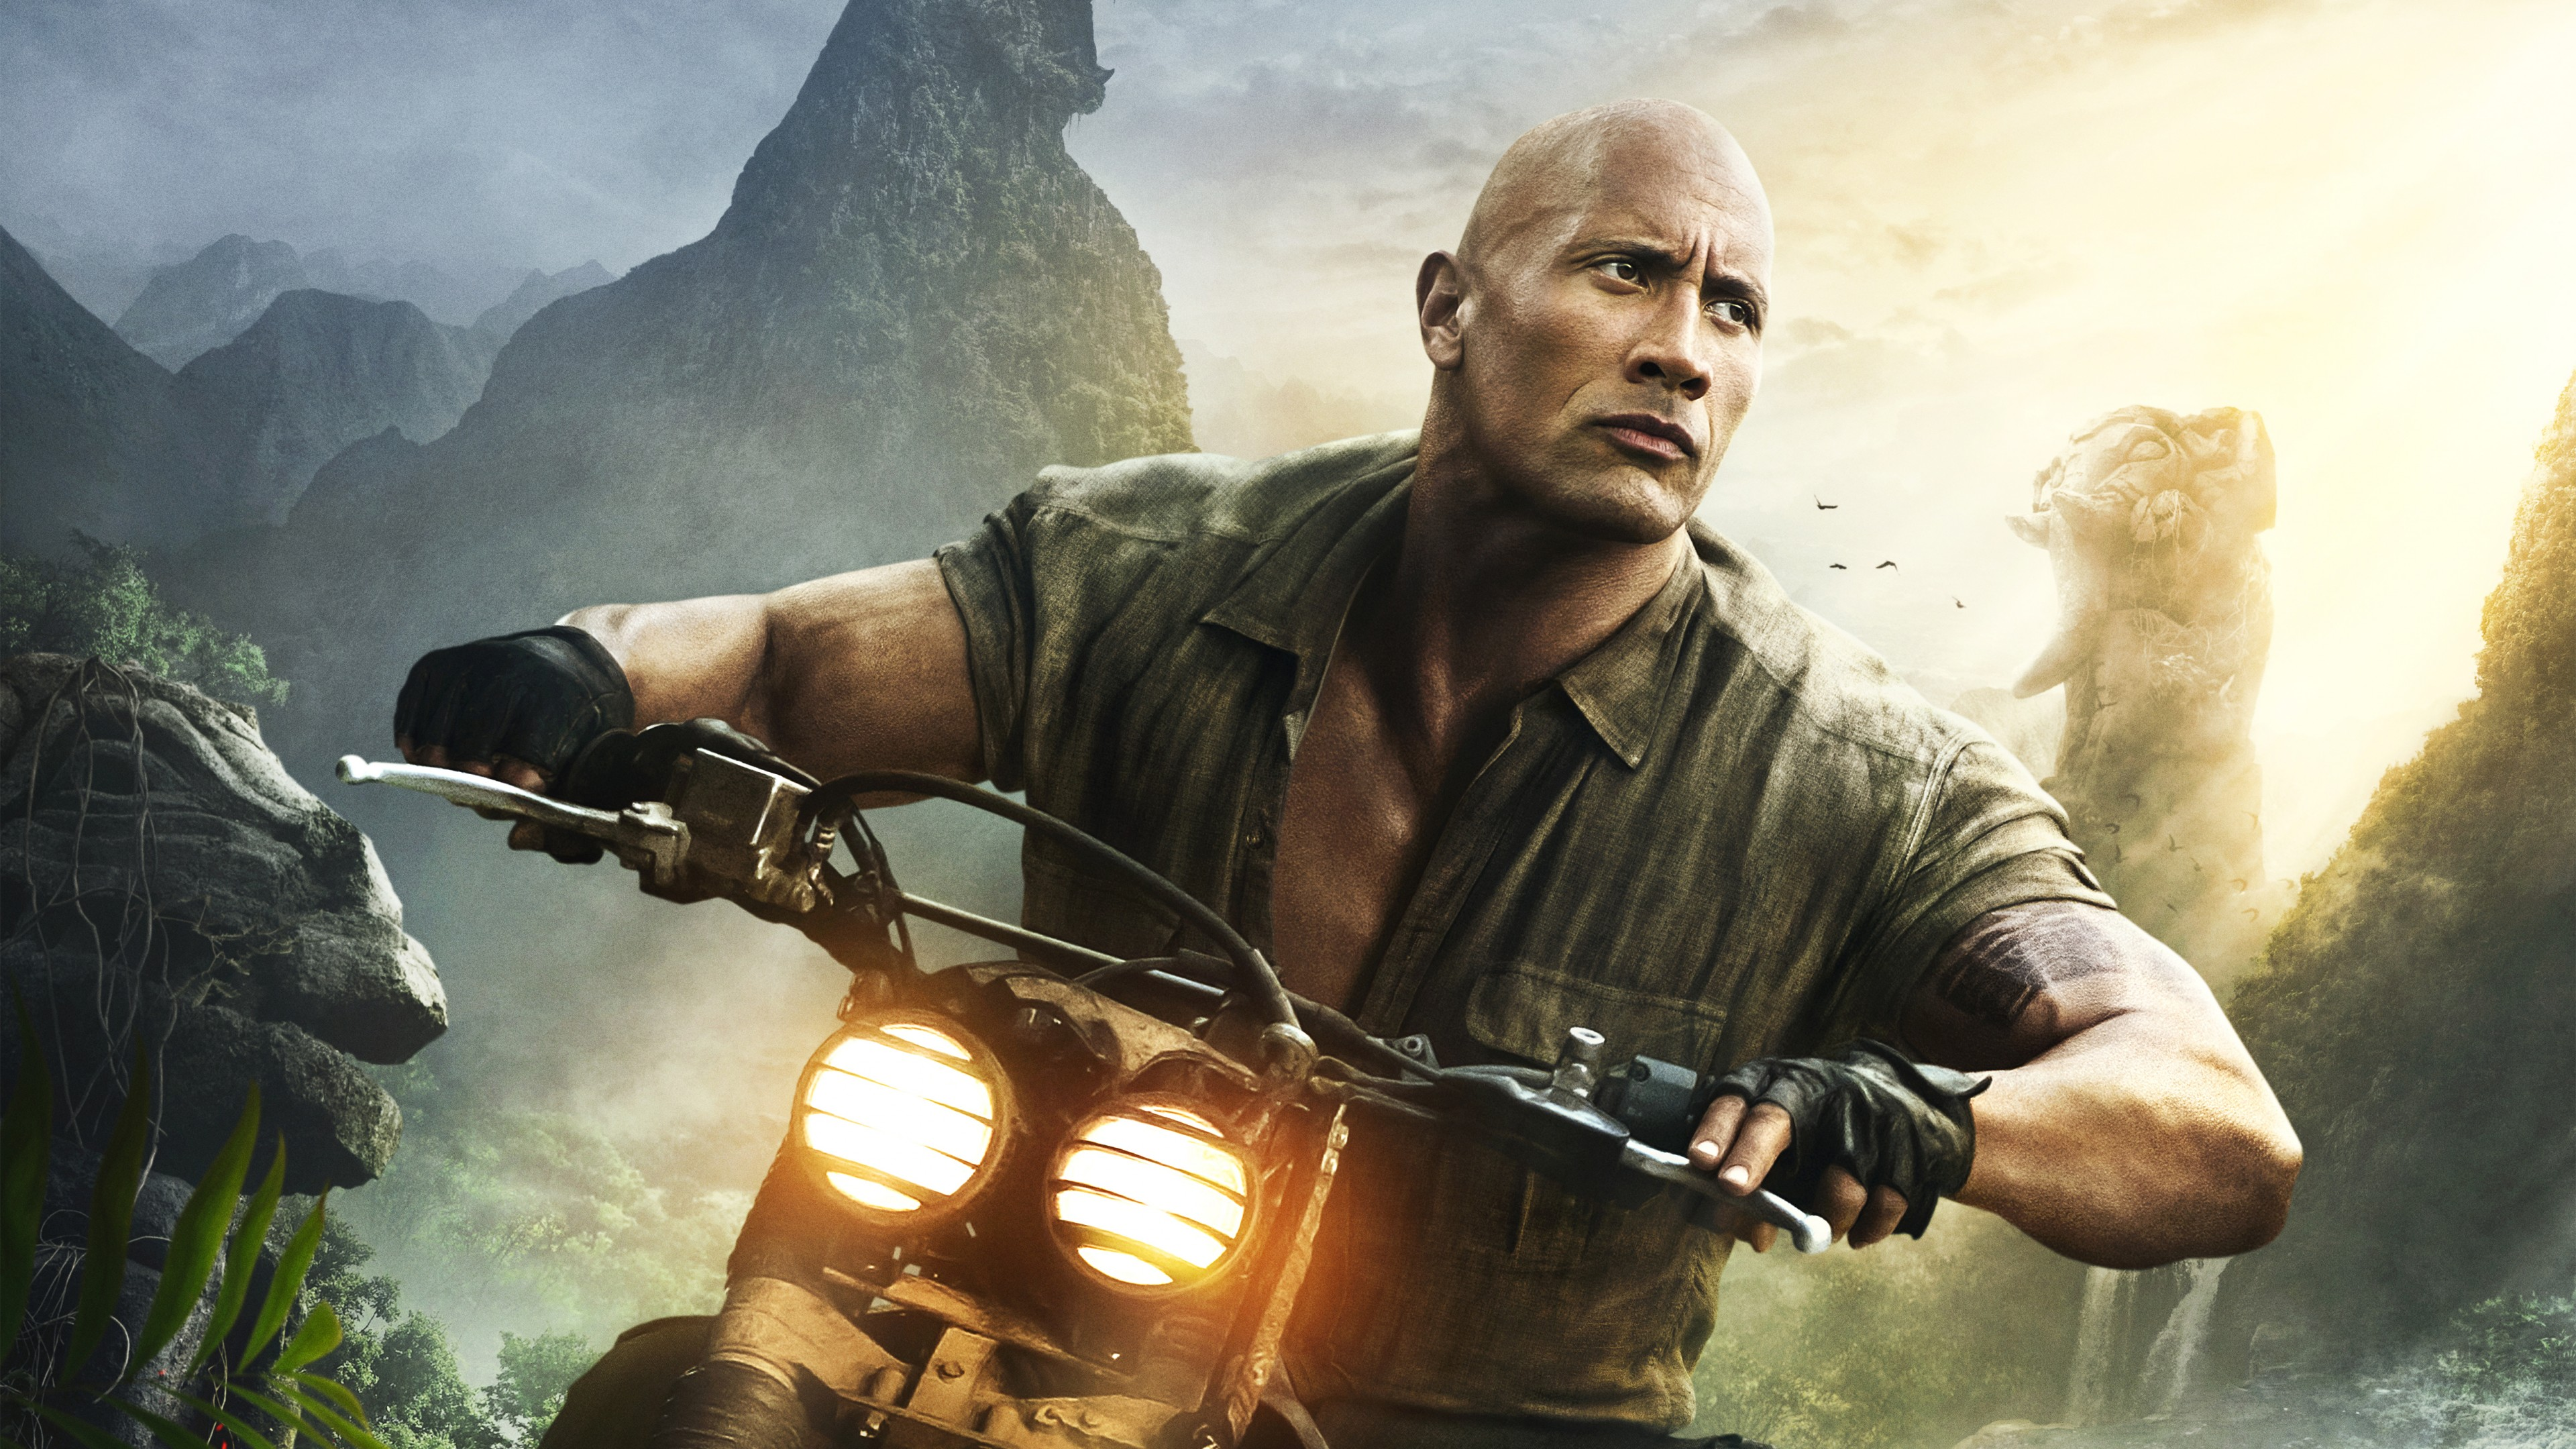 Wallpaper Jumanji Welcome to the Jungle Dwayne Johnson 4k 3840x2160